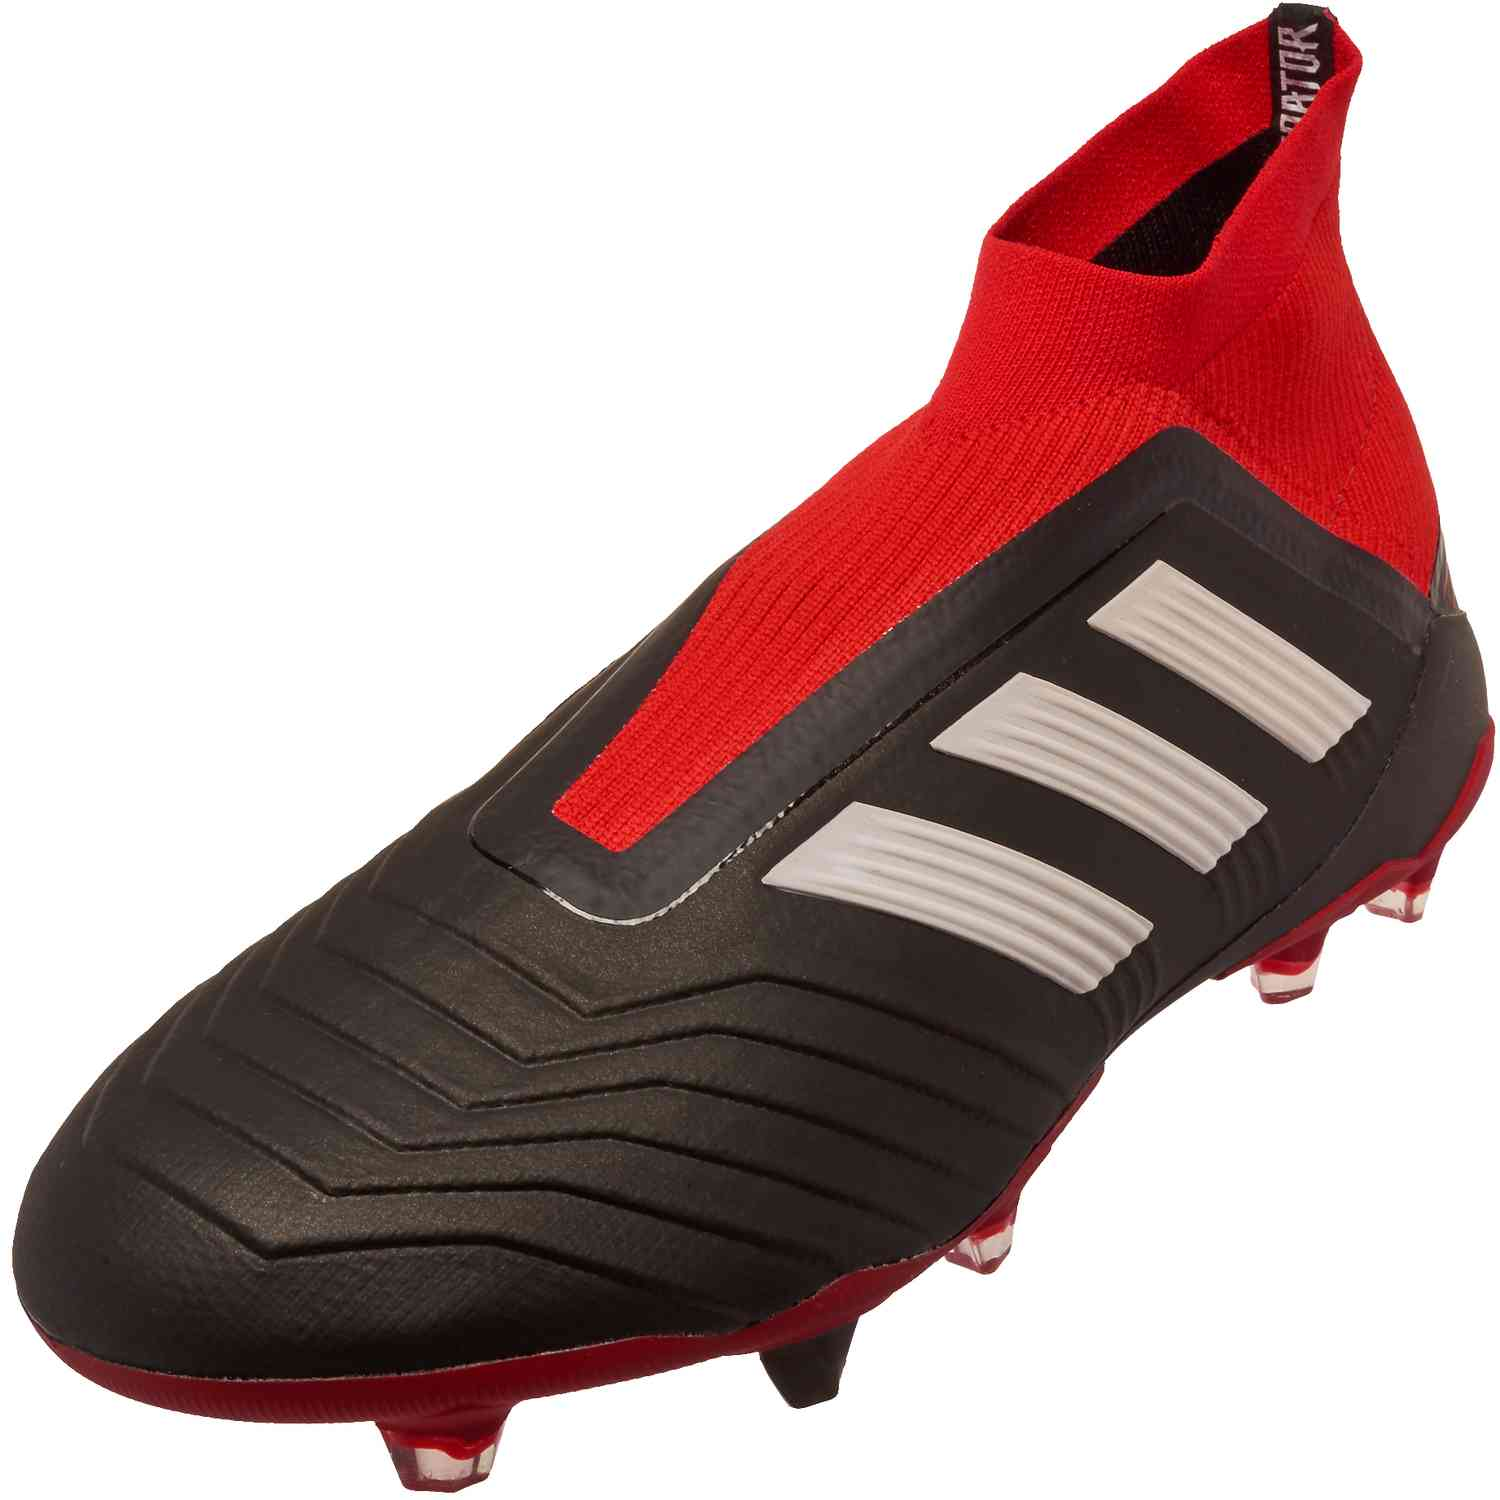 competitive price e2811 d2ca2 adidas Predator 18 FG – BlackWhiteRed